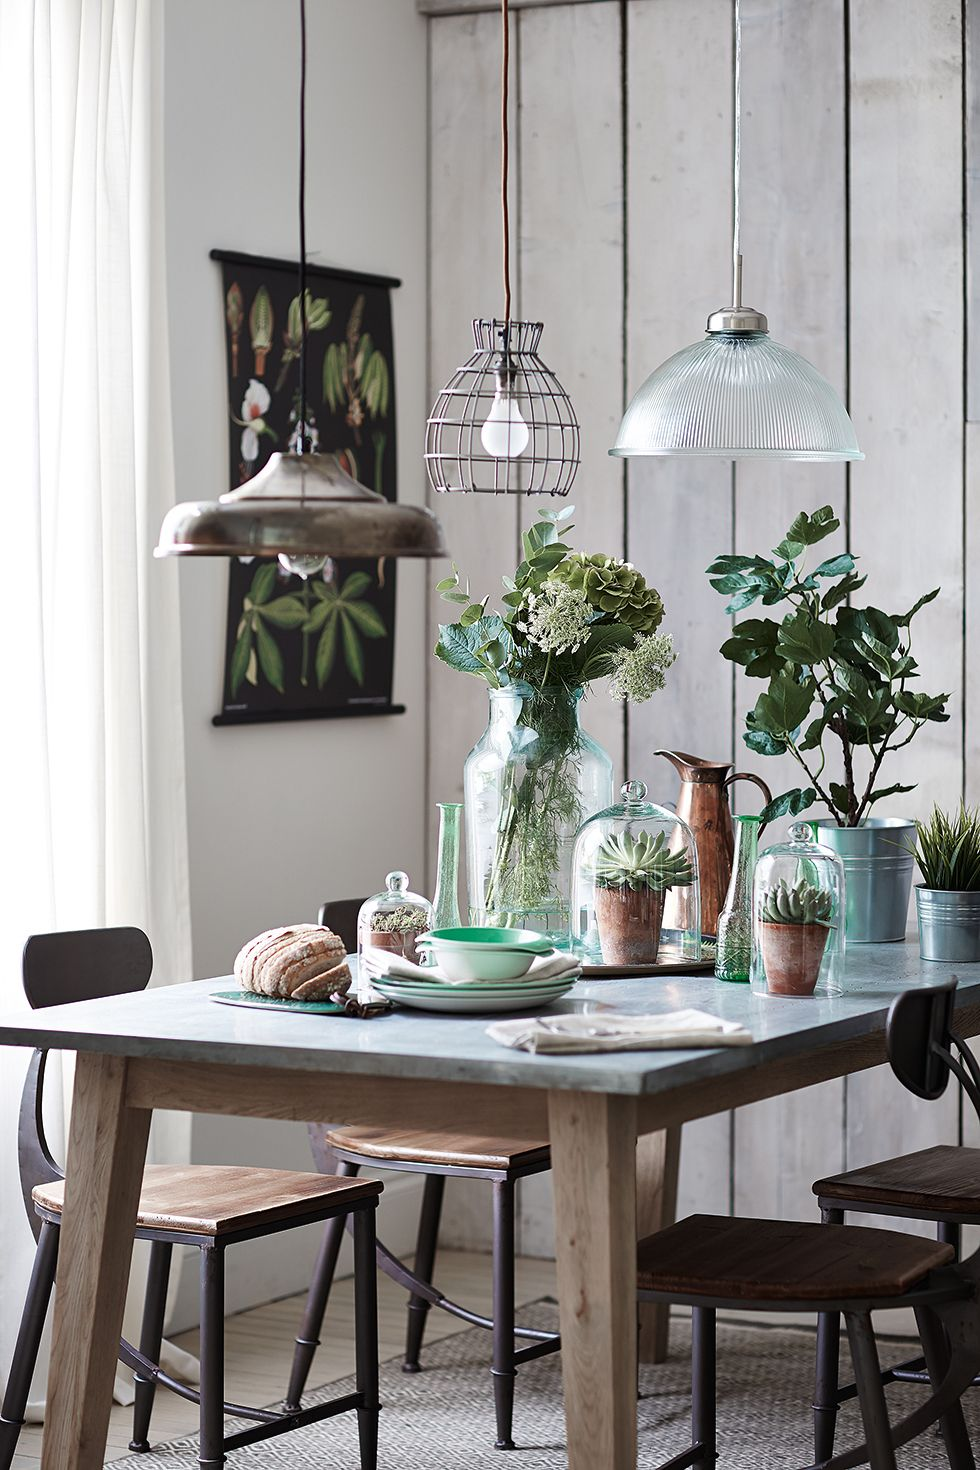 Interior Decorating Kitchen: Accessorise With Laboratory-style Bell Jars And Vintage